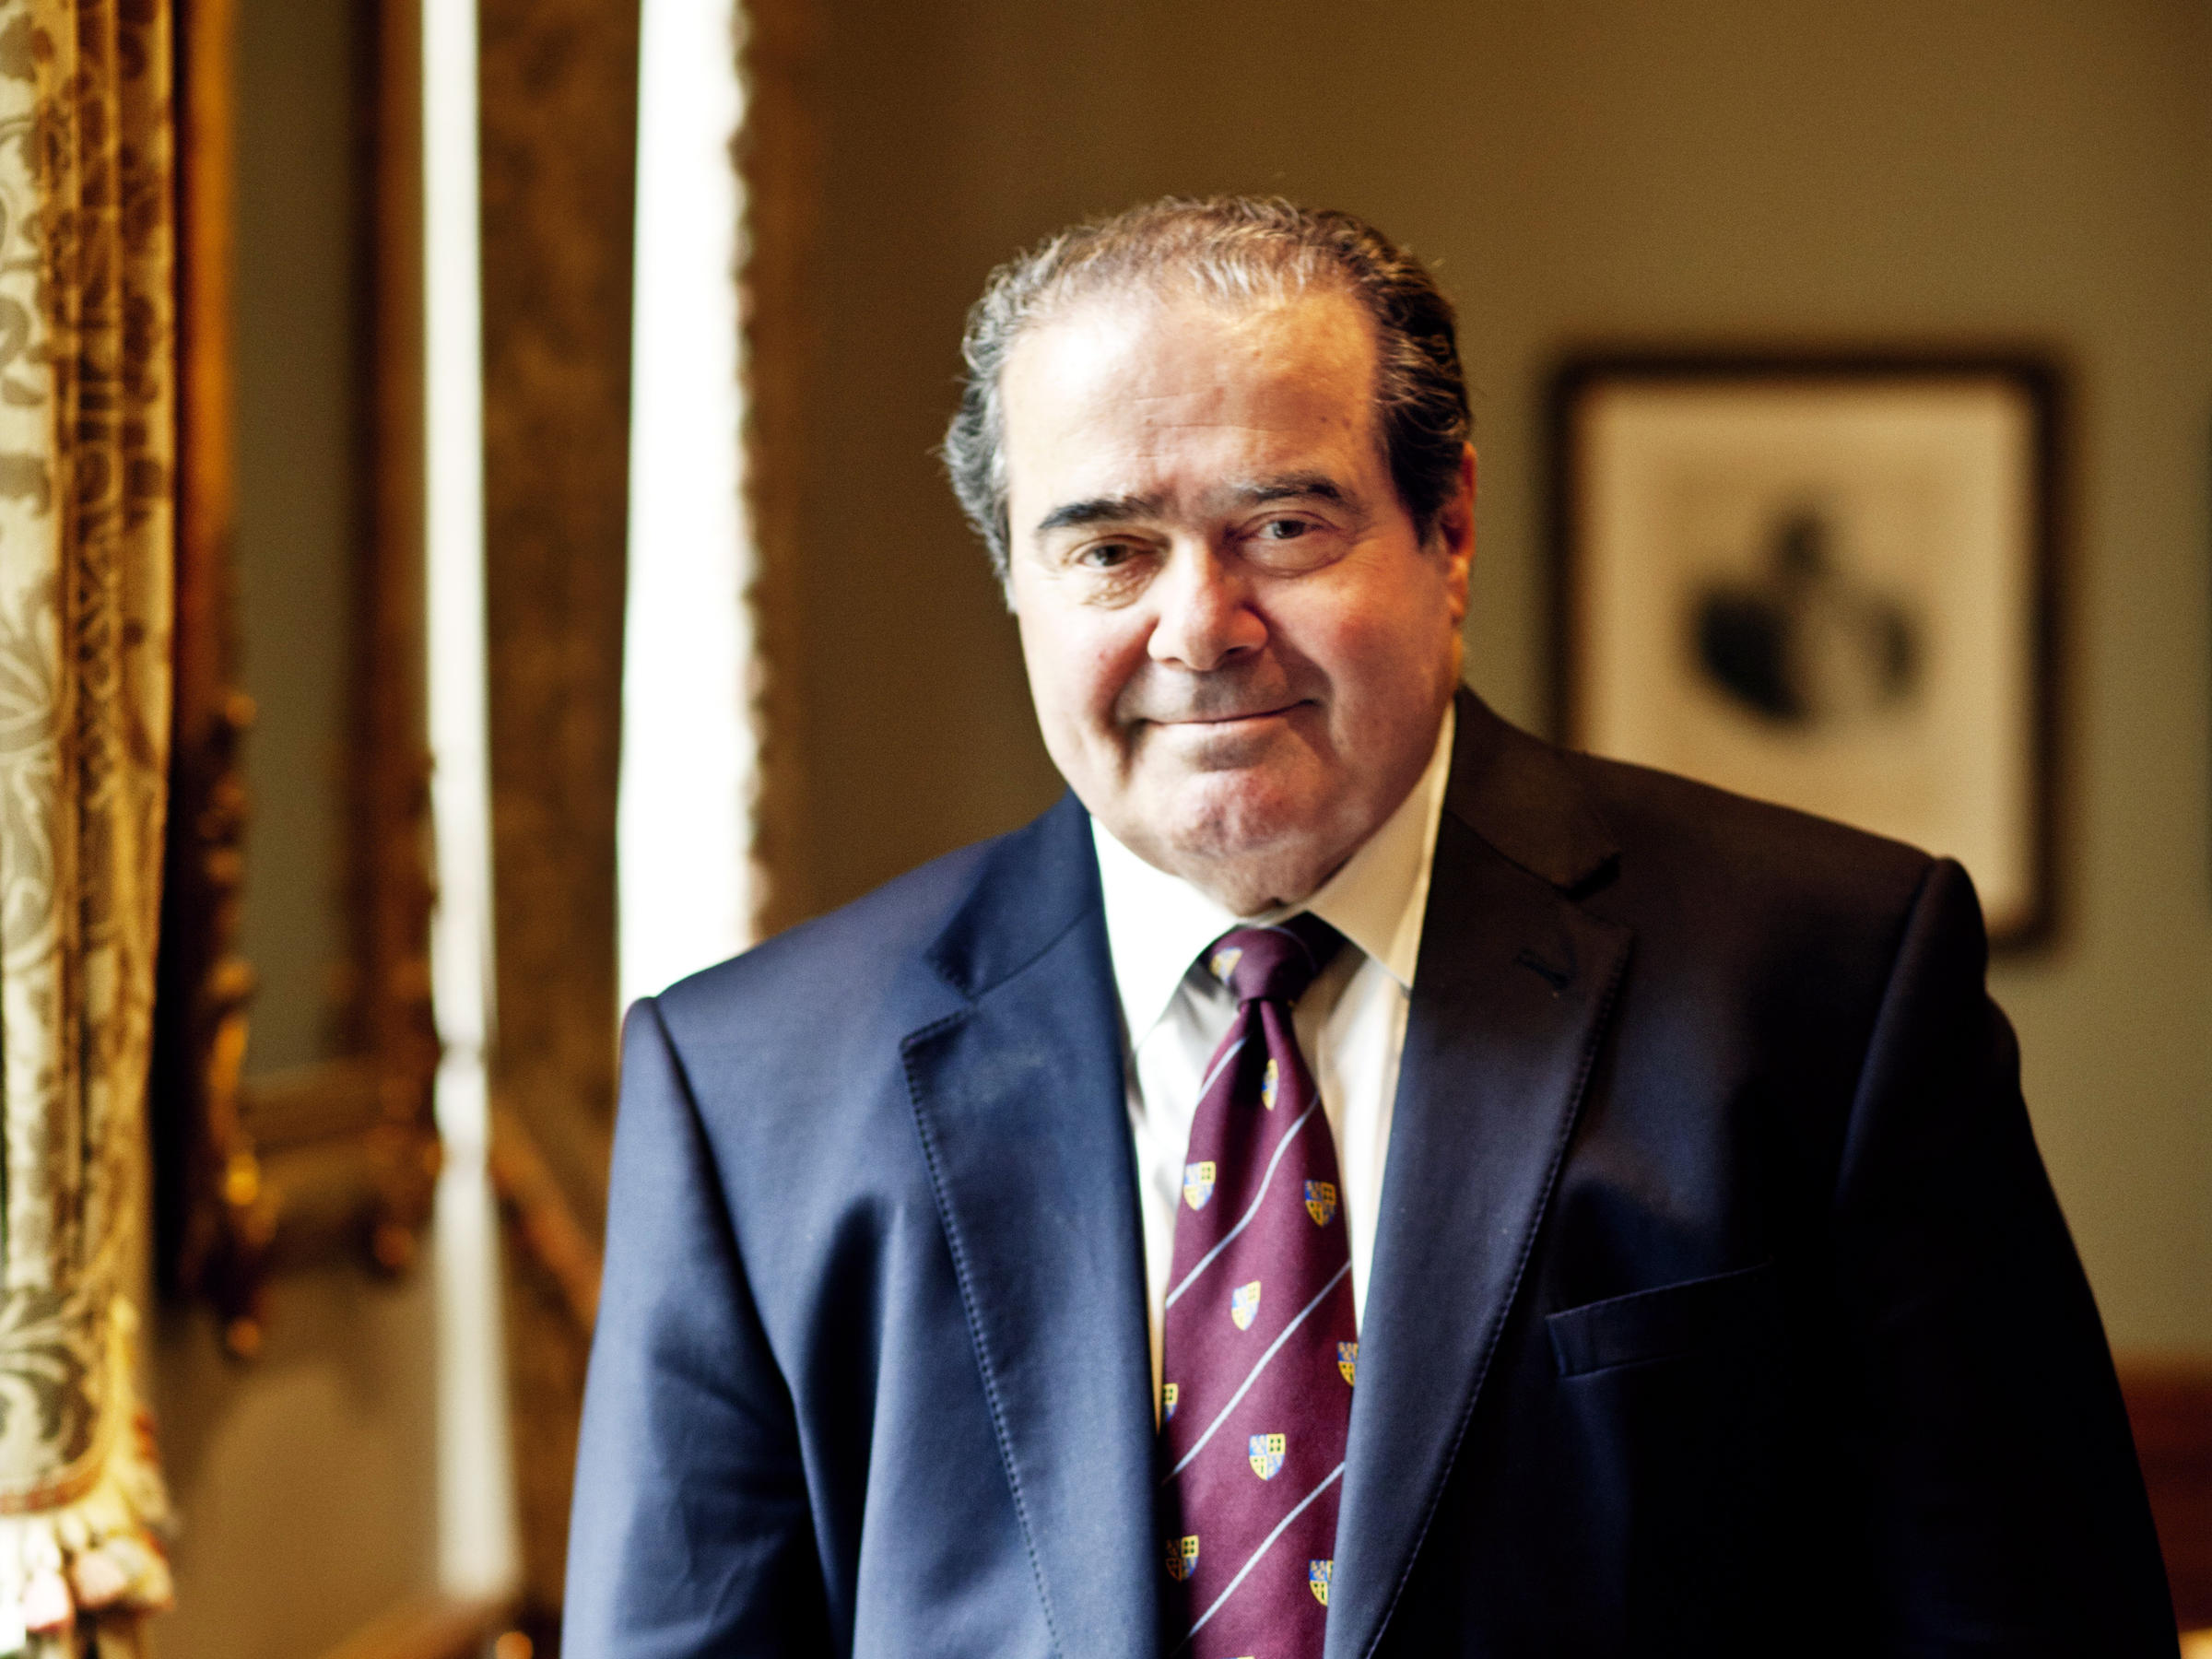 scalia The late conservative justice antonin scalia was known for dissenting opinions on social issues like abortion rights and gay marriage, remarking that he liked to tell the majority to take a walk.